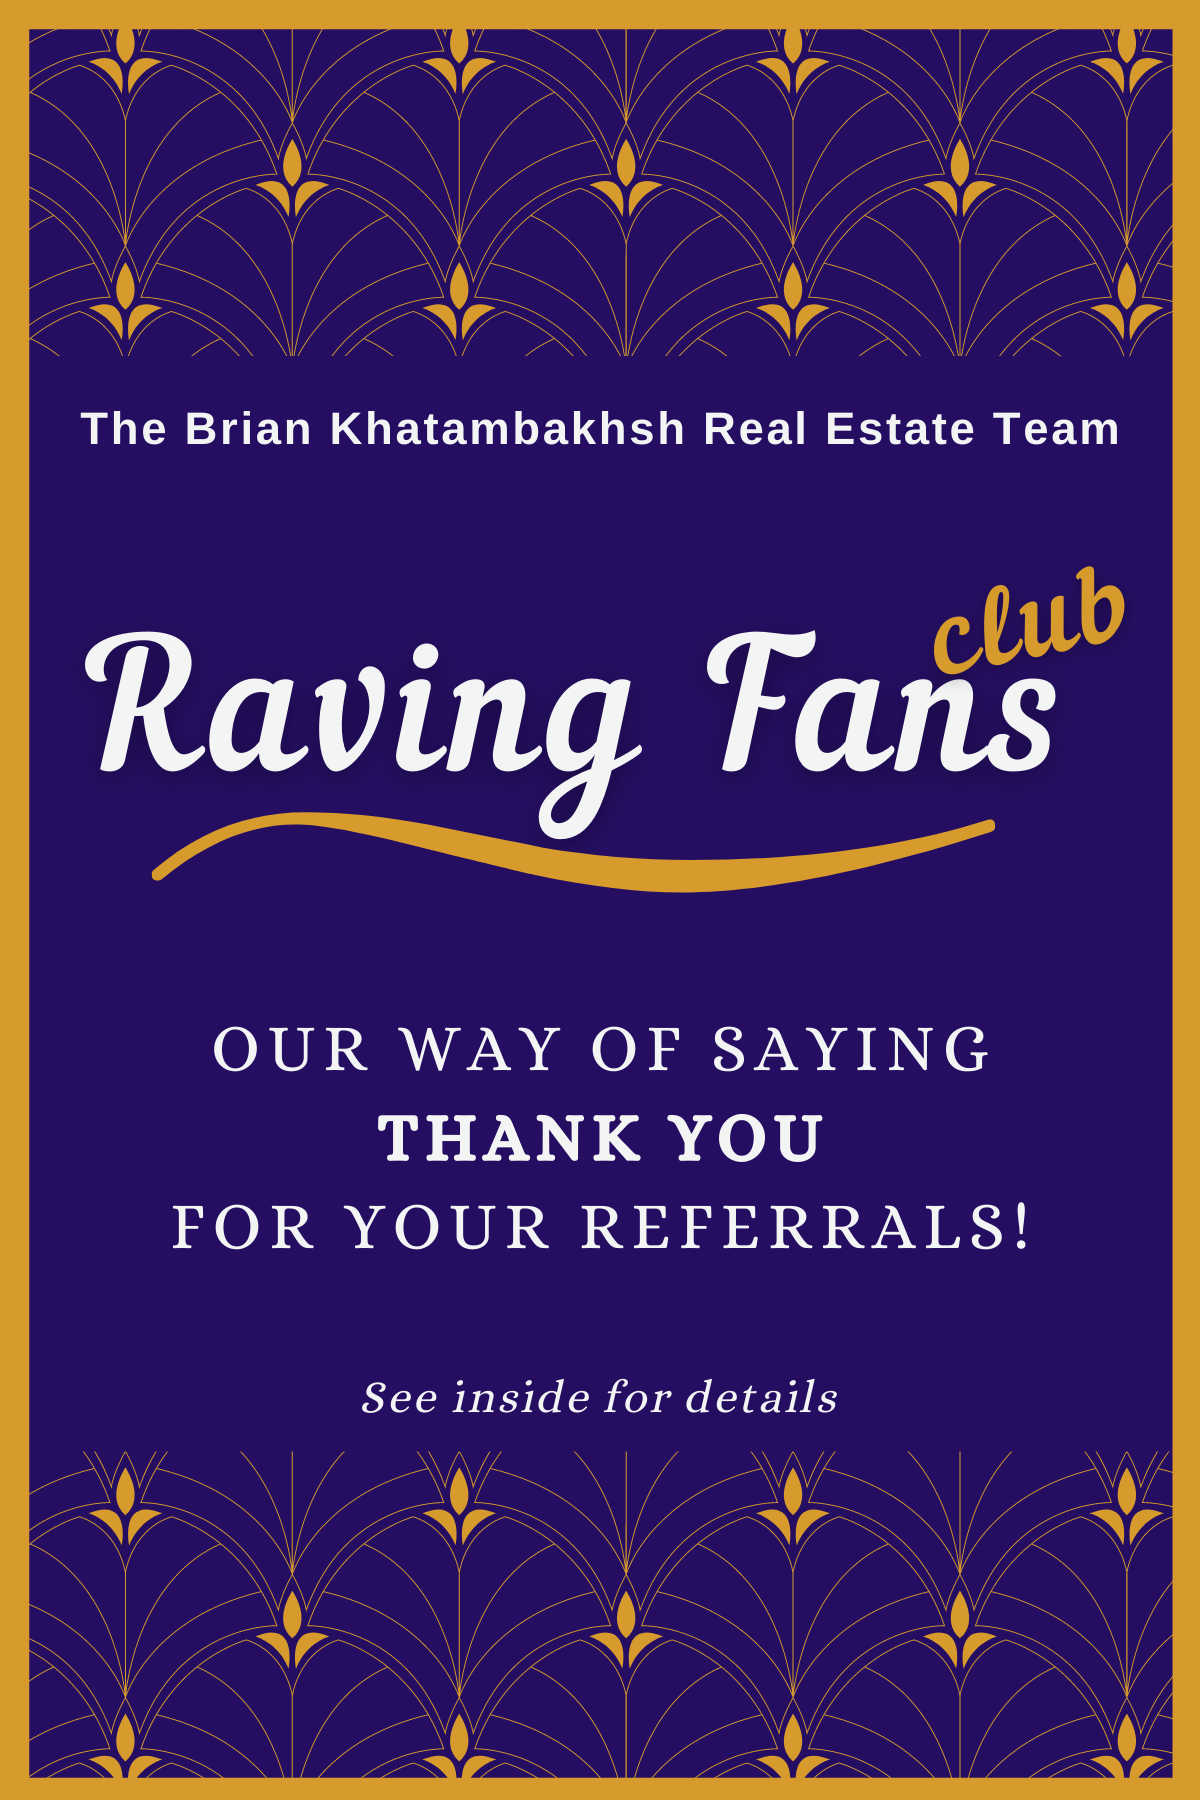 Copy of Raving fans club ad for referral newsletter.png